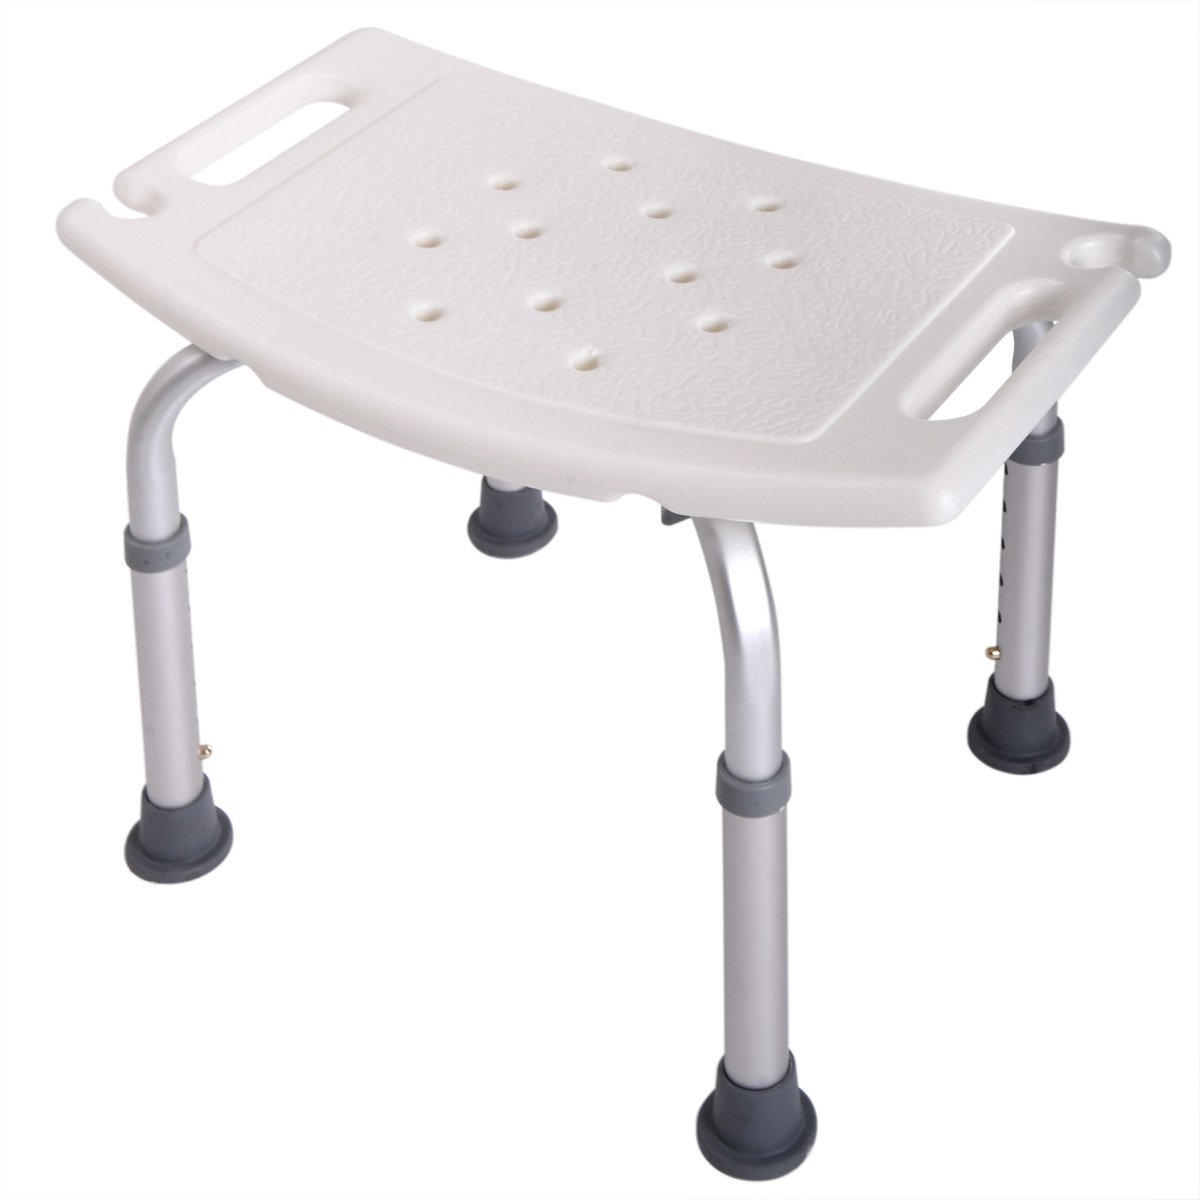 Tobbi Medical Tool-Free Assembly Adjustable Shower Stool Tub Chair W/Anti-Slip Rubber Tips by Tobbi (Image #4)